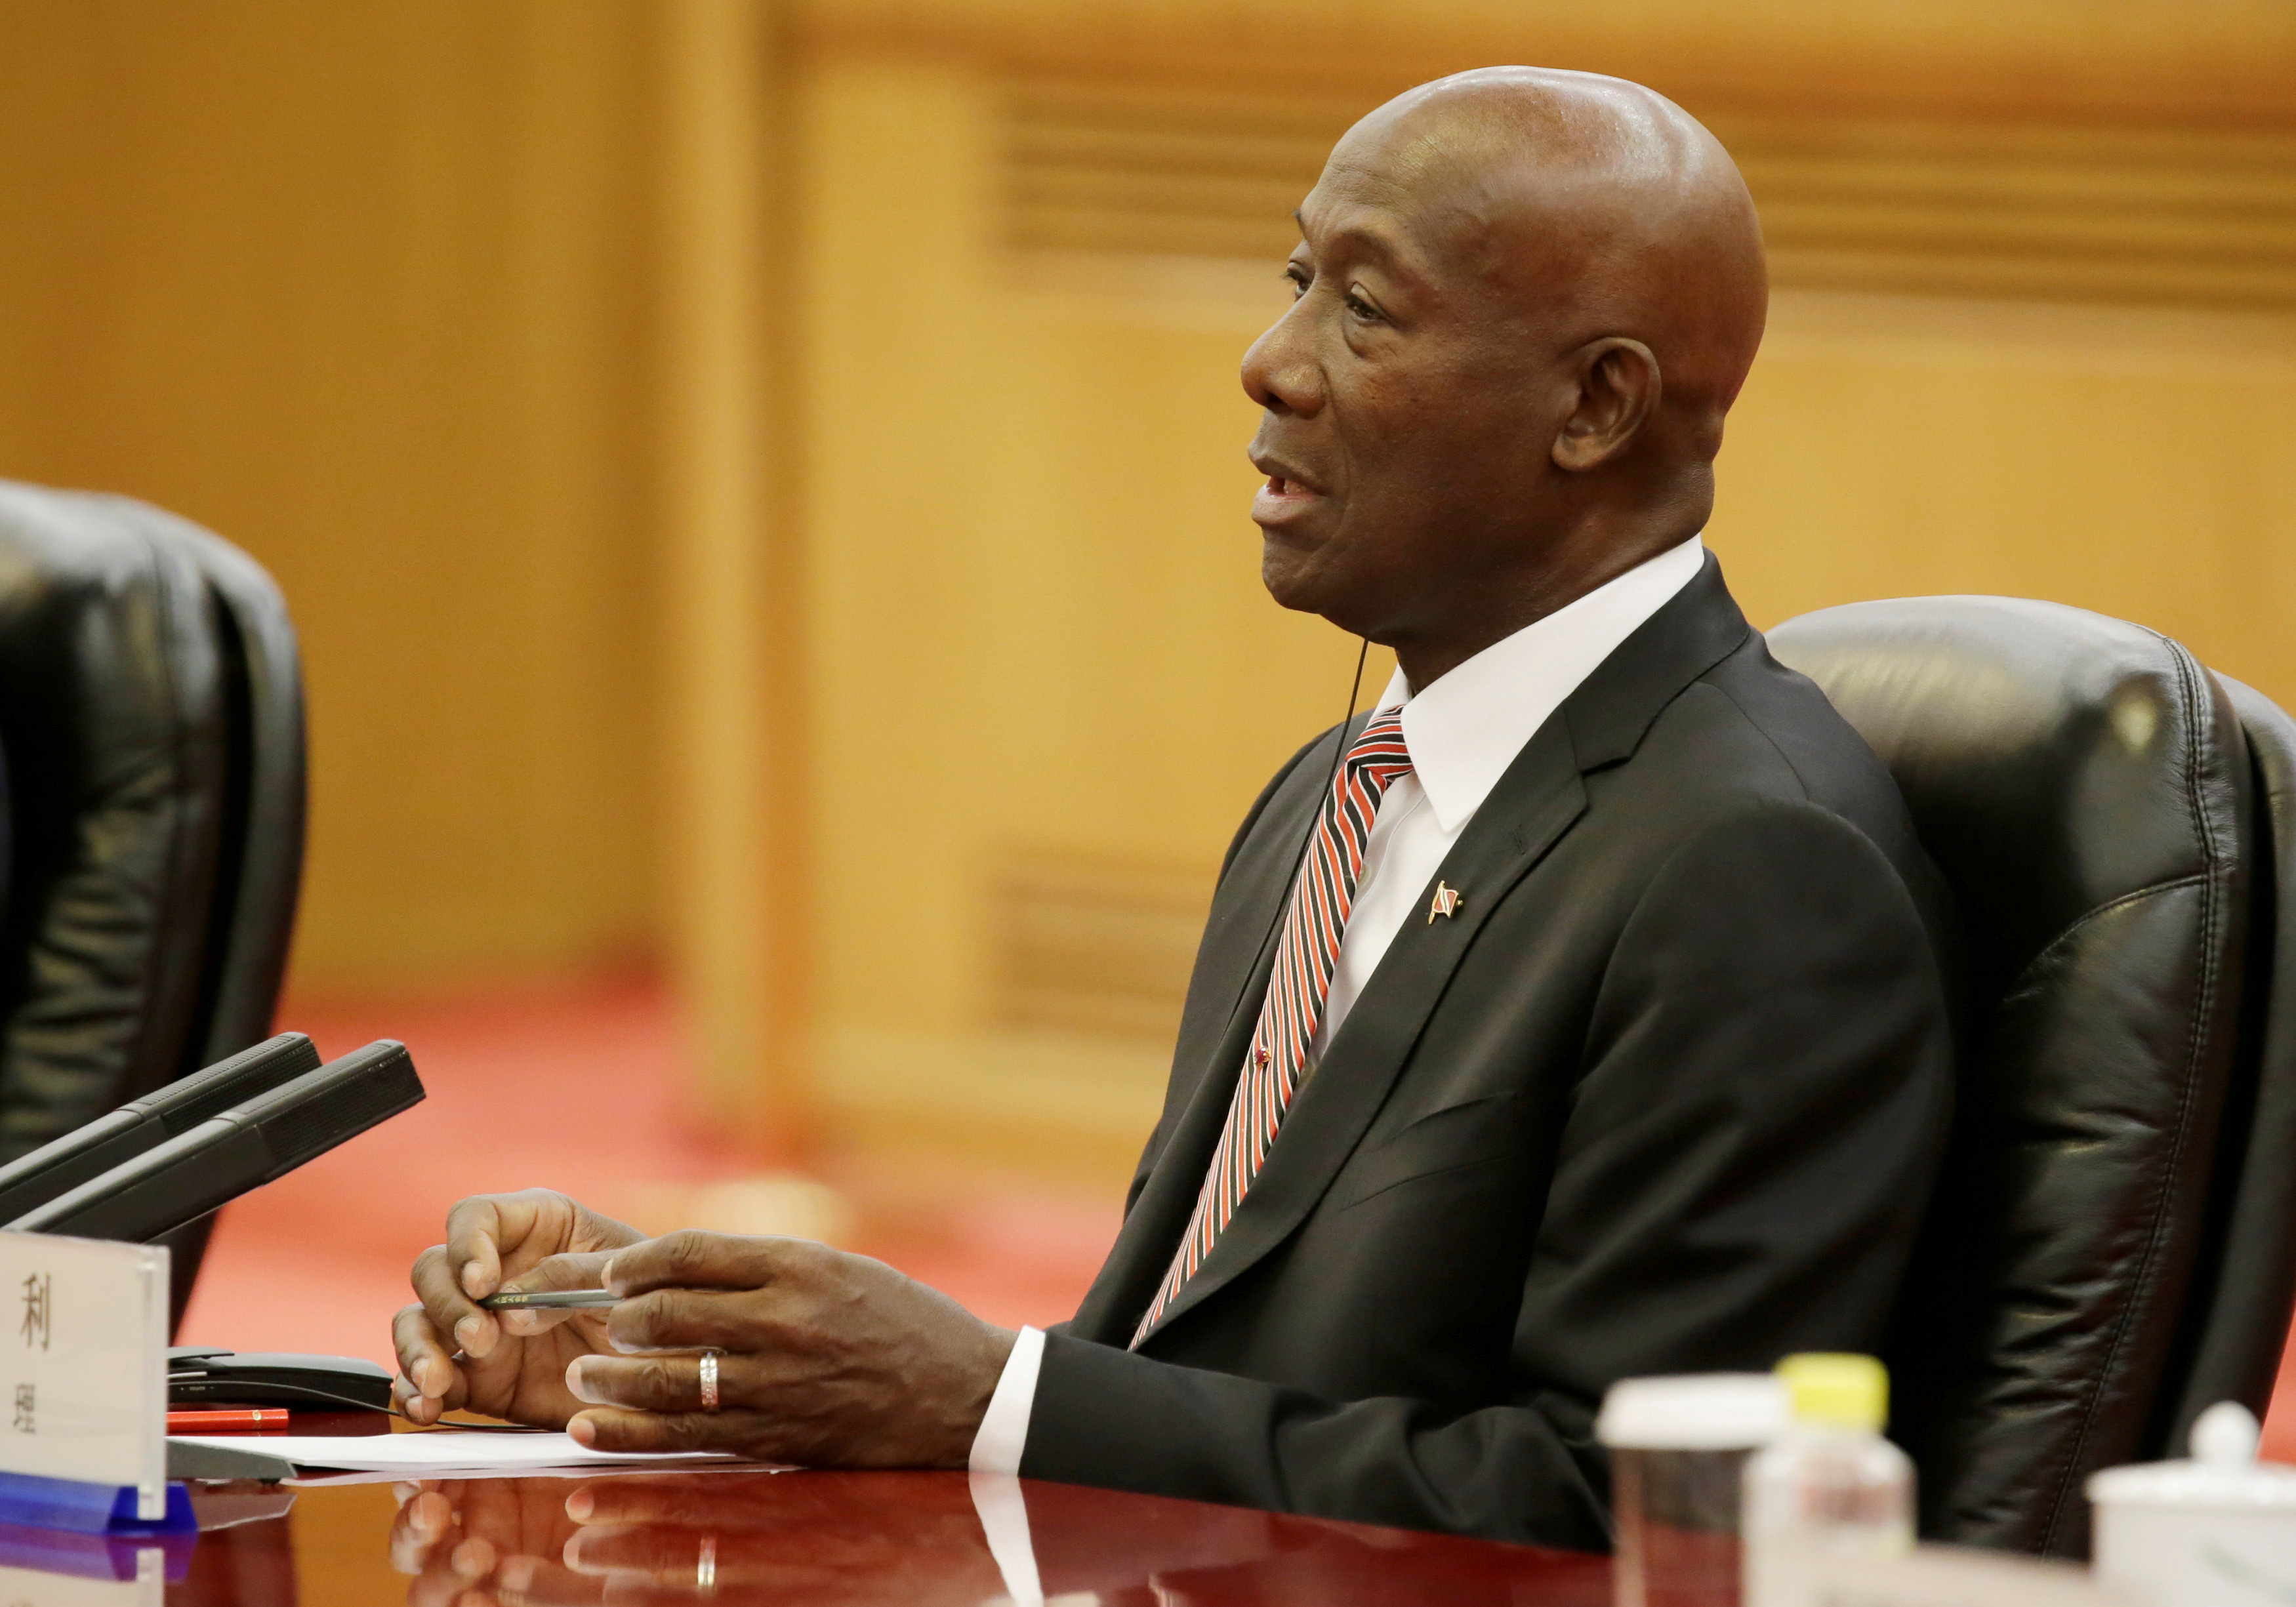 Trinidad and Tobago Prime Minister Keith Rowley speaks during a meeting with China's Premier Li Keqiang (not pictured) at the Great Hall of the People in Beijing, China, May 14, 2018. REUTERS/Jason Lee/Pool/File Photo